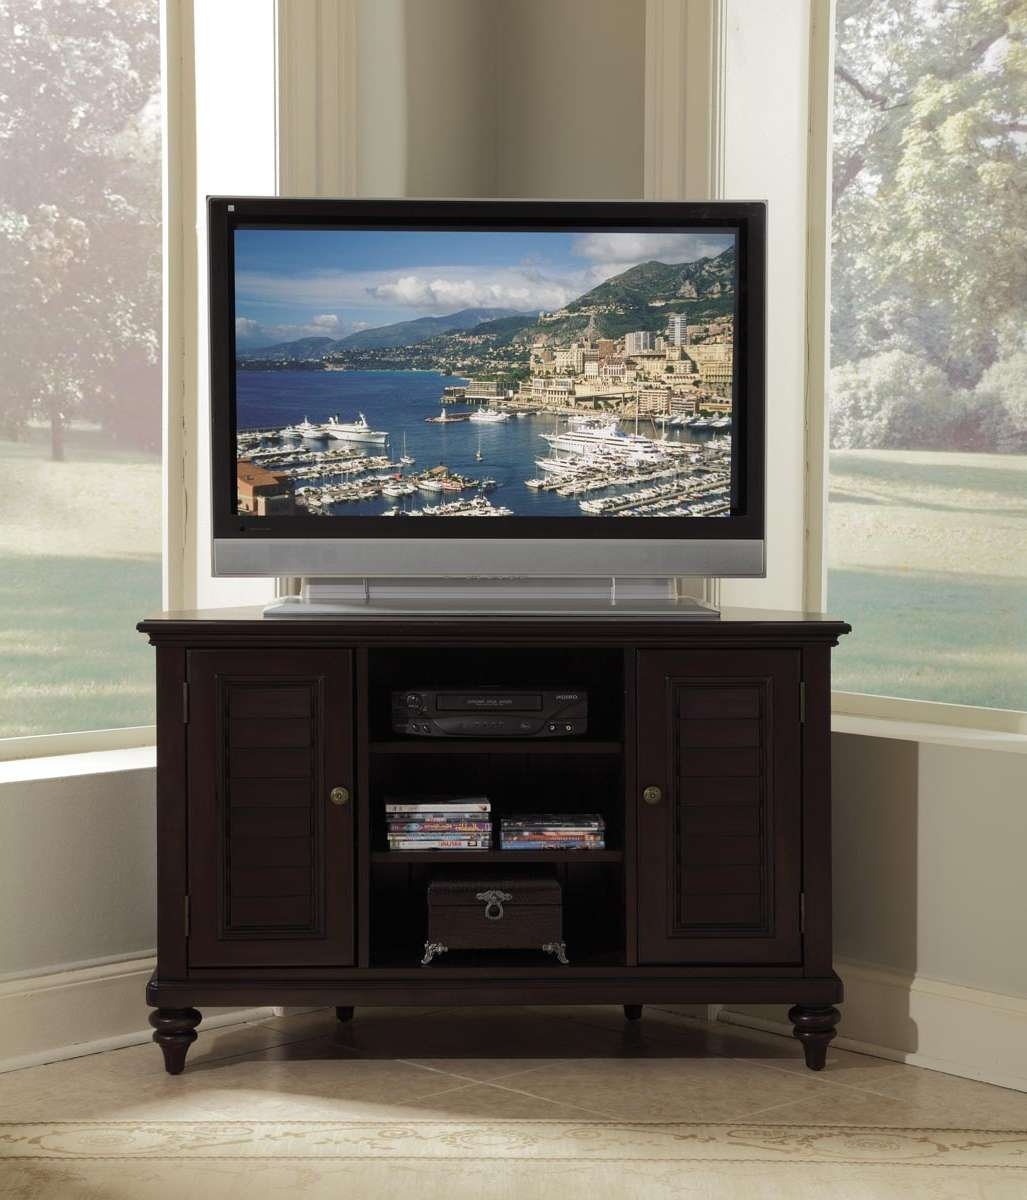 Tv Stand With Rounded Corners 36 With Tv Stand With Rounded Pertaining To Tv Stands Rounded Corners (View 13 of 15)